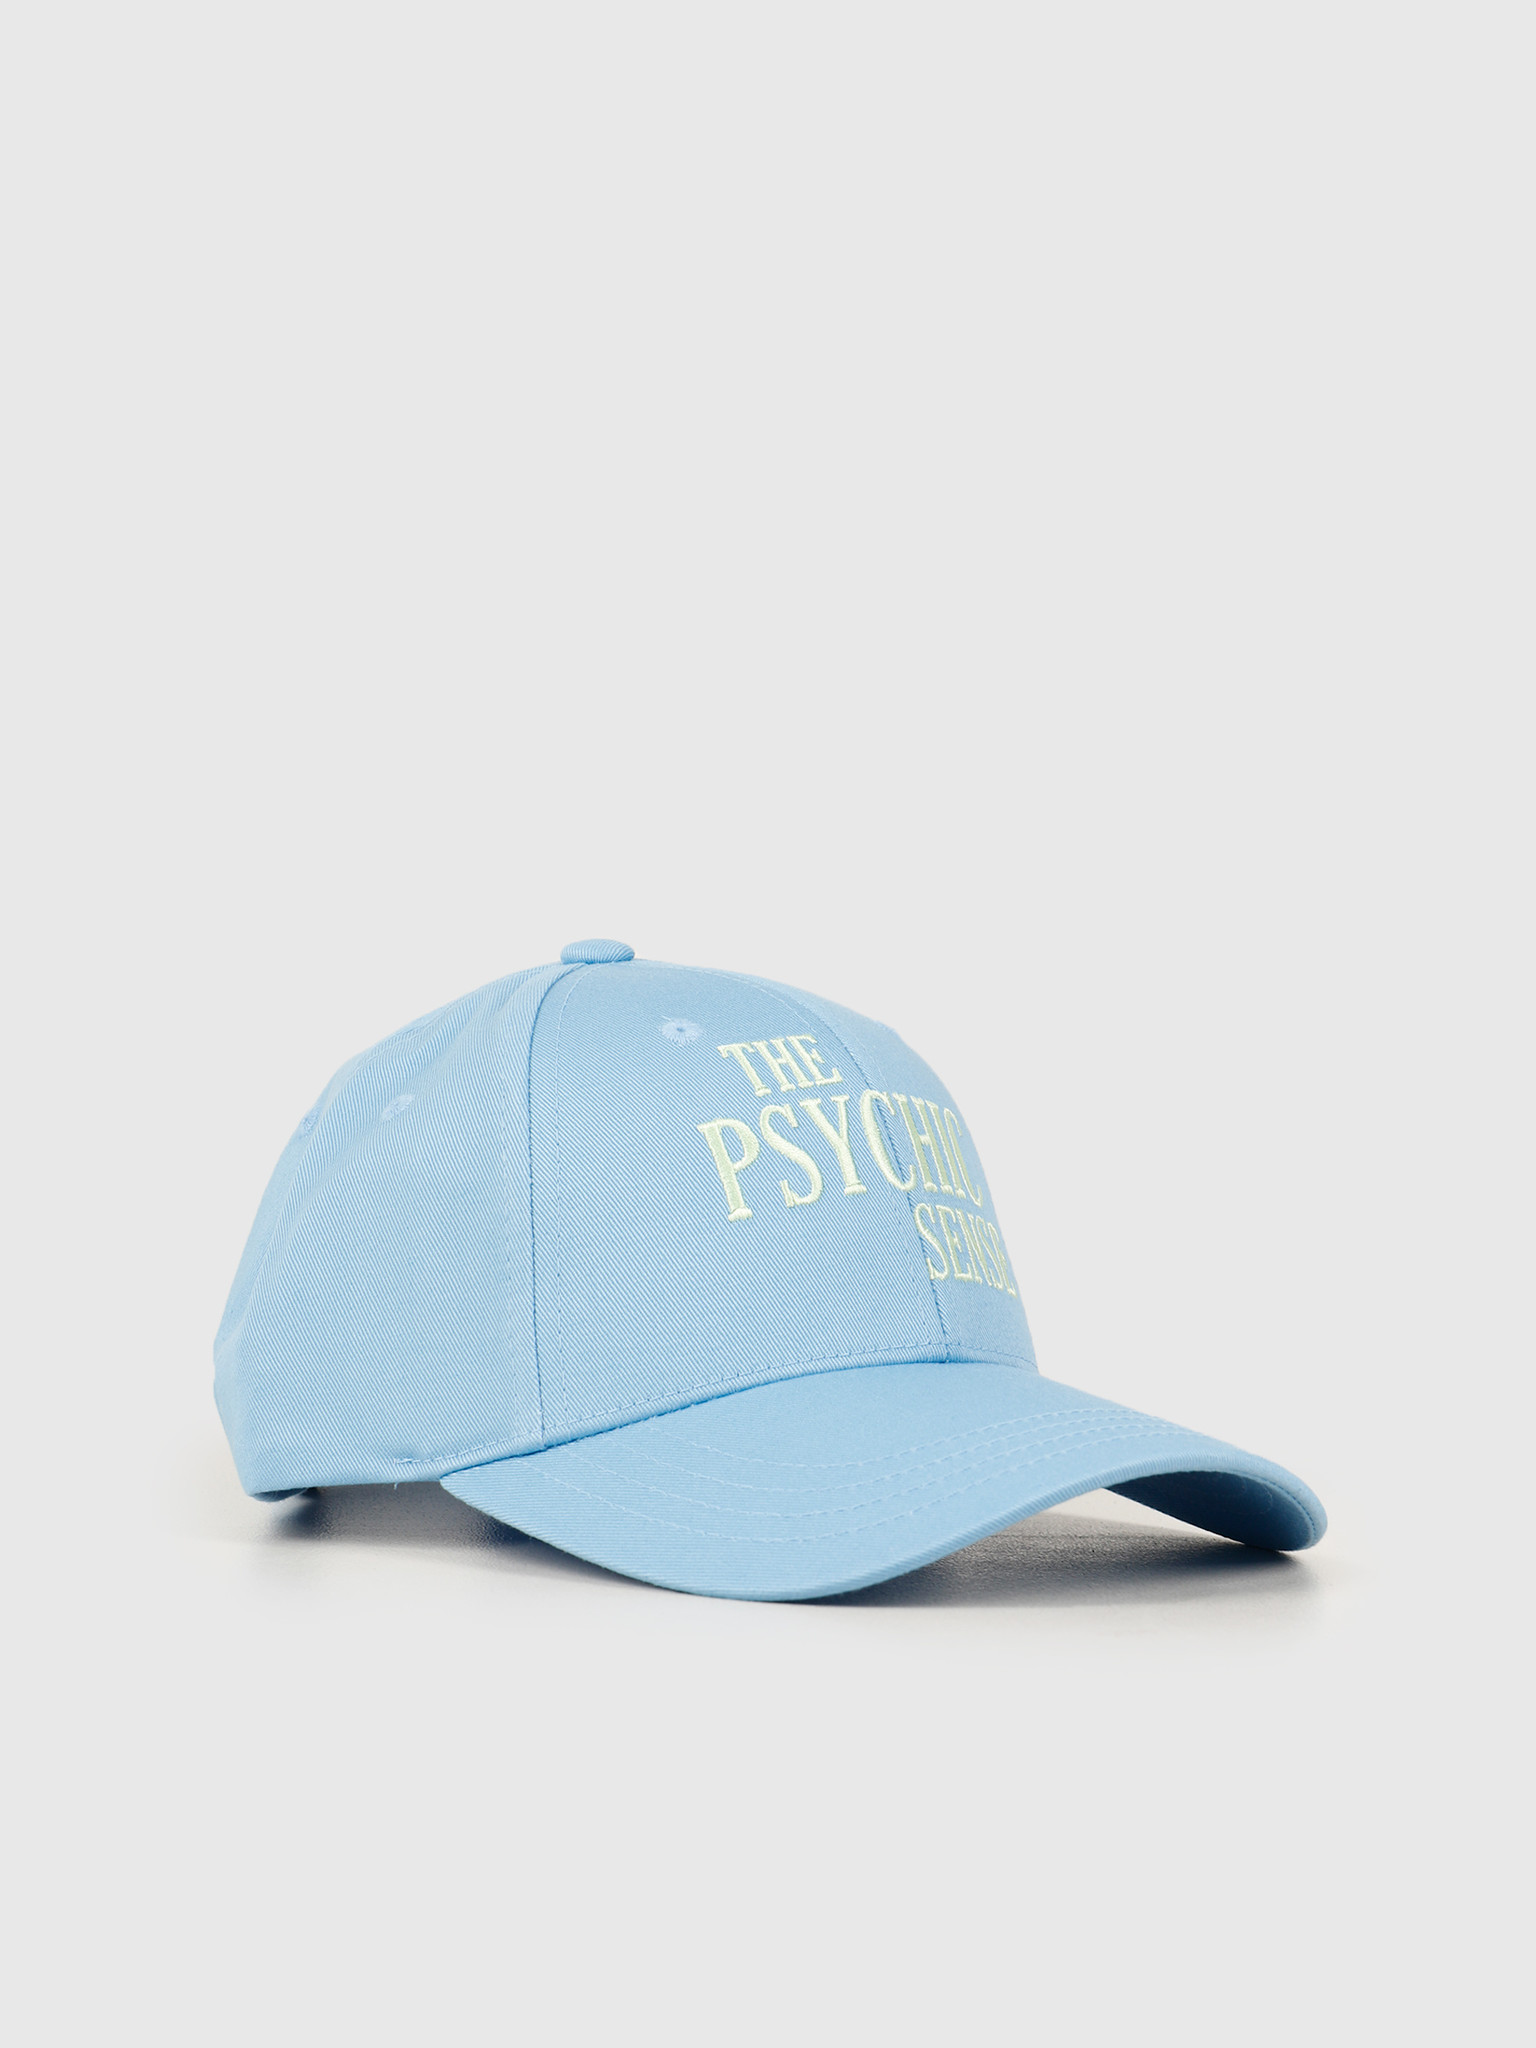 Daily Paper Daily Paper Hense Cap Sky Blue 20S1AC34-01